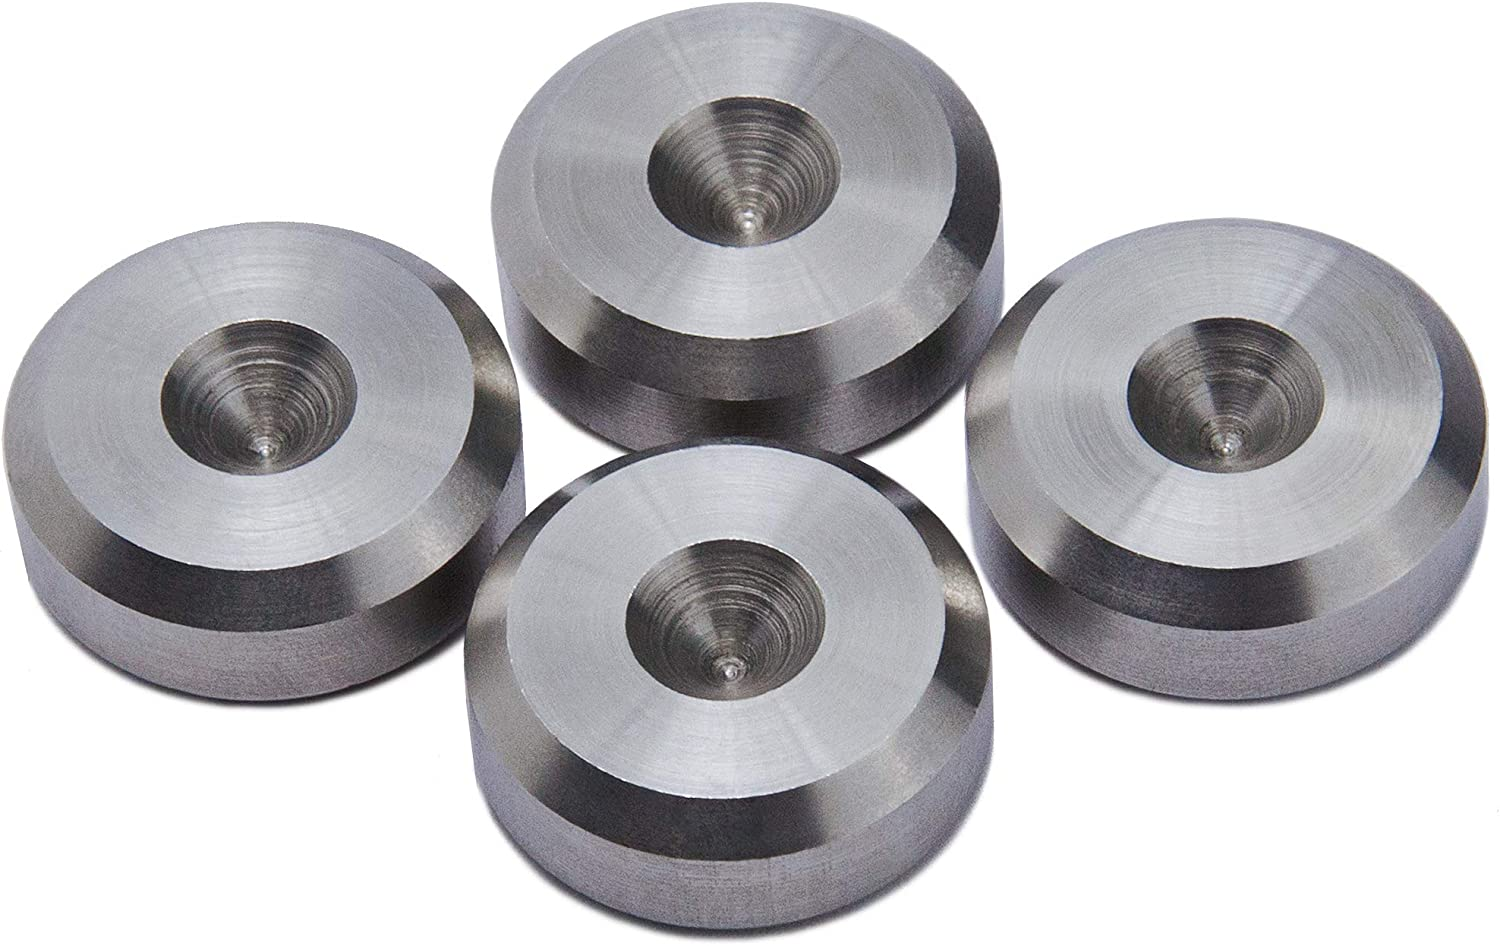 Aluminium Speaker Spike Pads 20mm dia Chamfered PrecisionGeek Set of 8 pieces